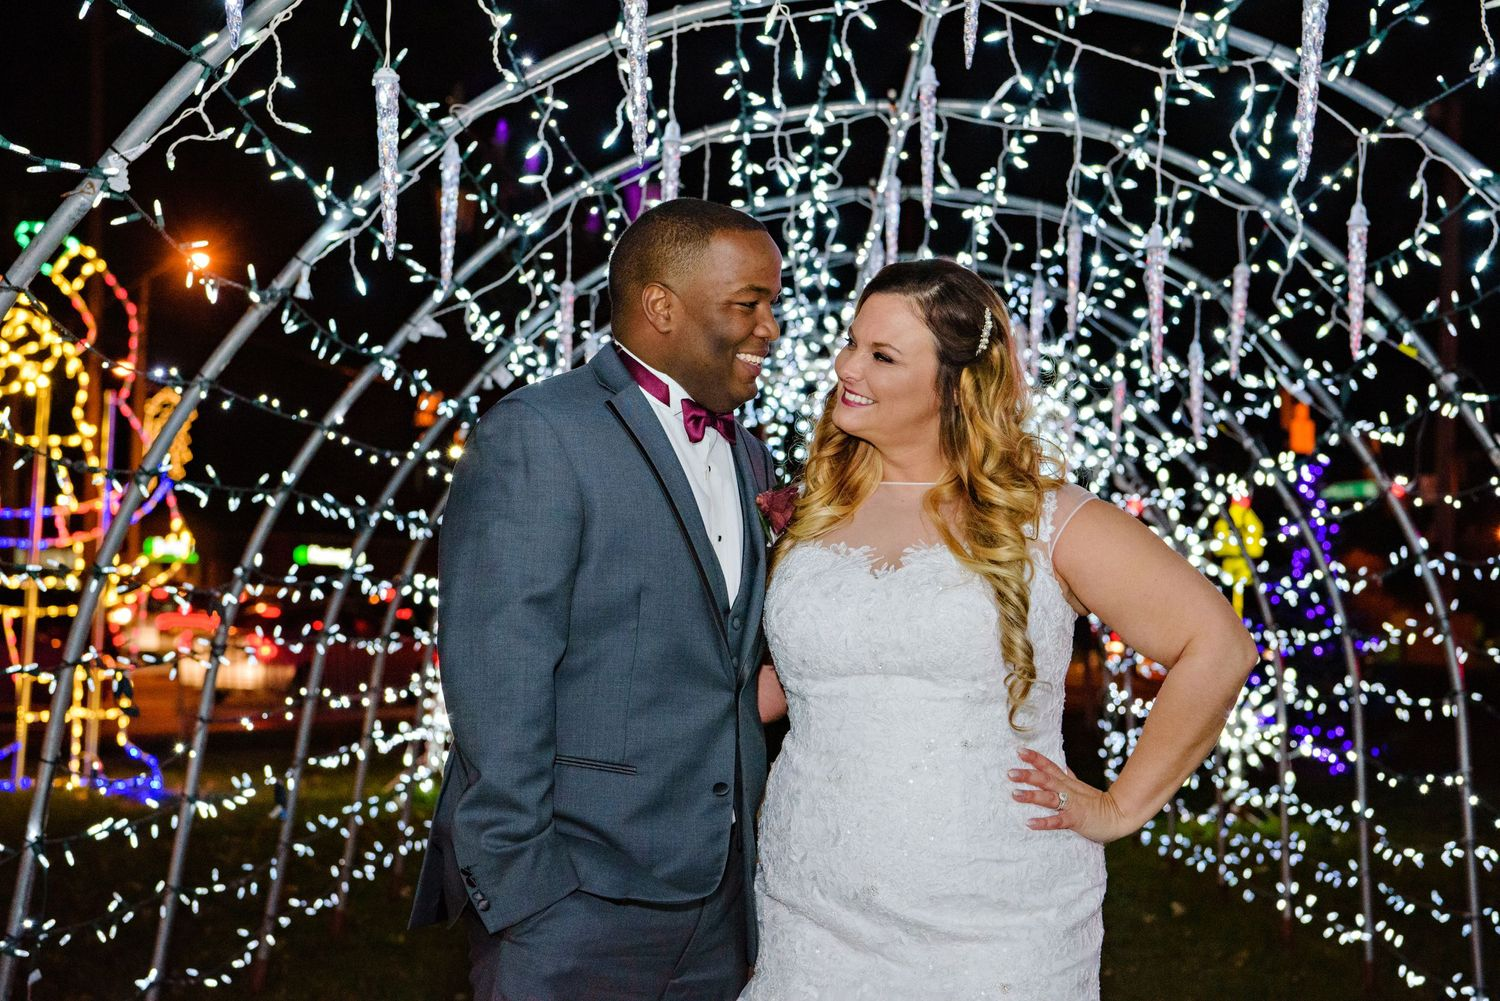 Bride and Groom photo in Strongsville Square with Christmas Lights